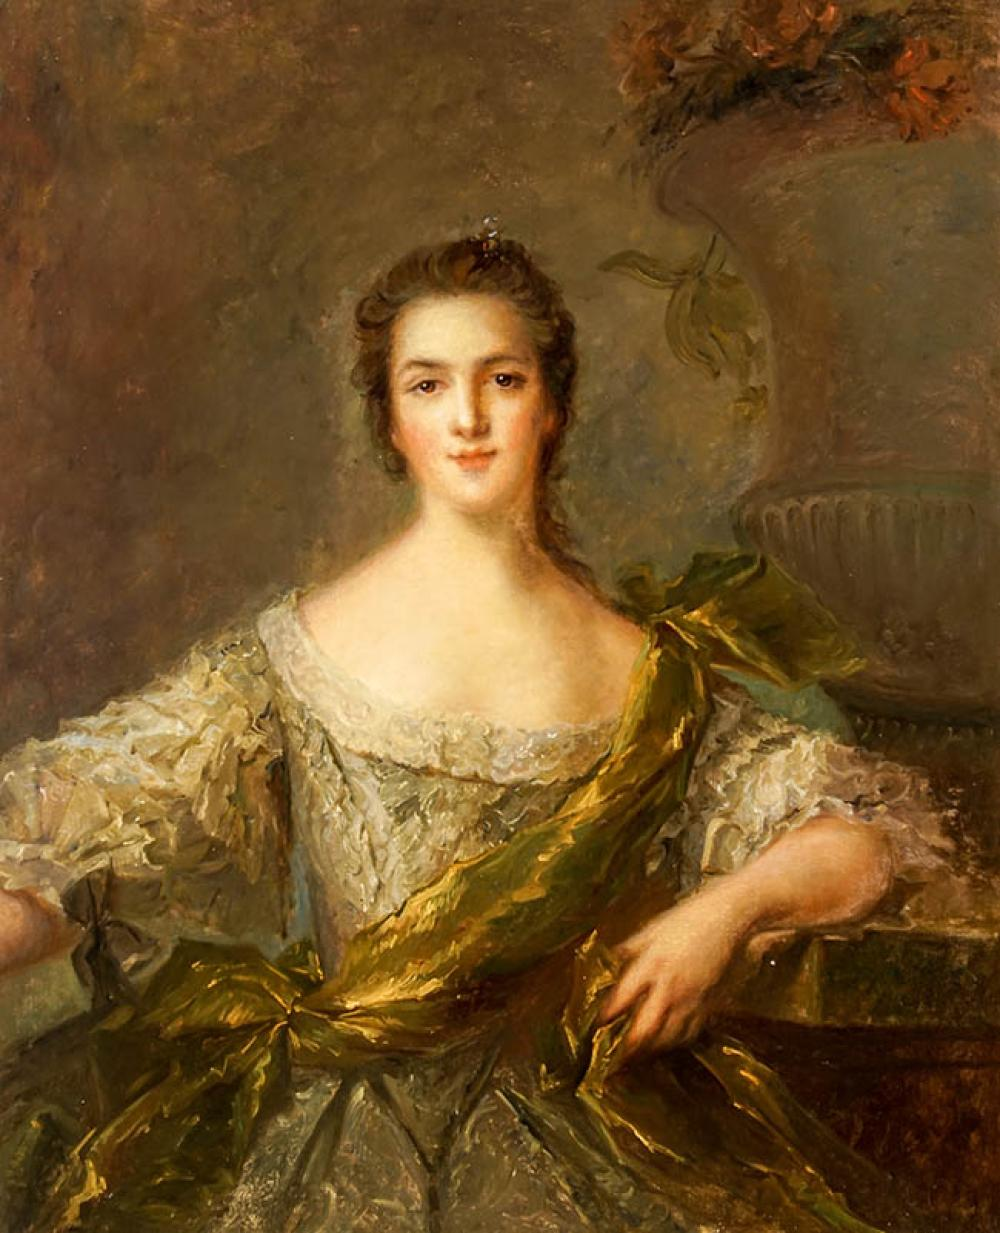 French School, 18th-19th Century, Portrait of a Lady, Oil on Canvas, 40 x 32 in